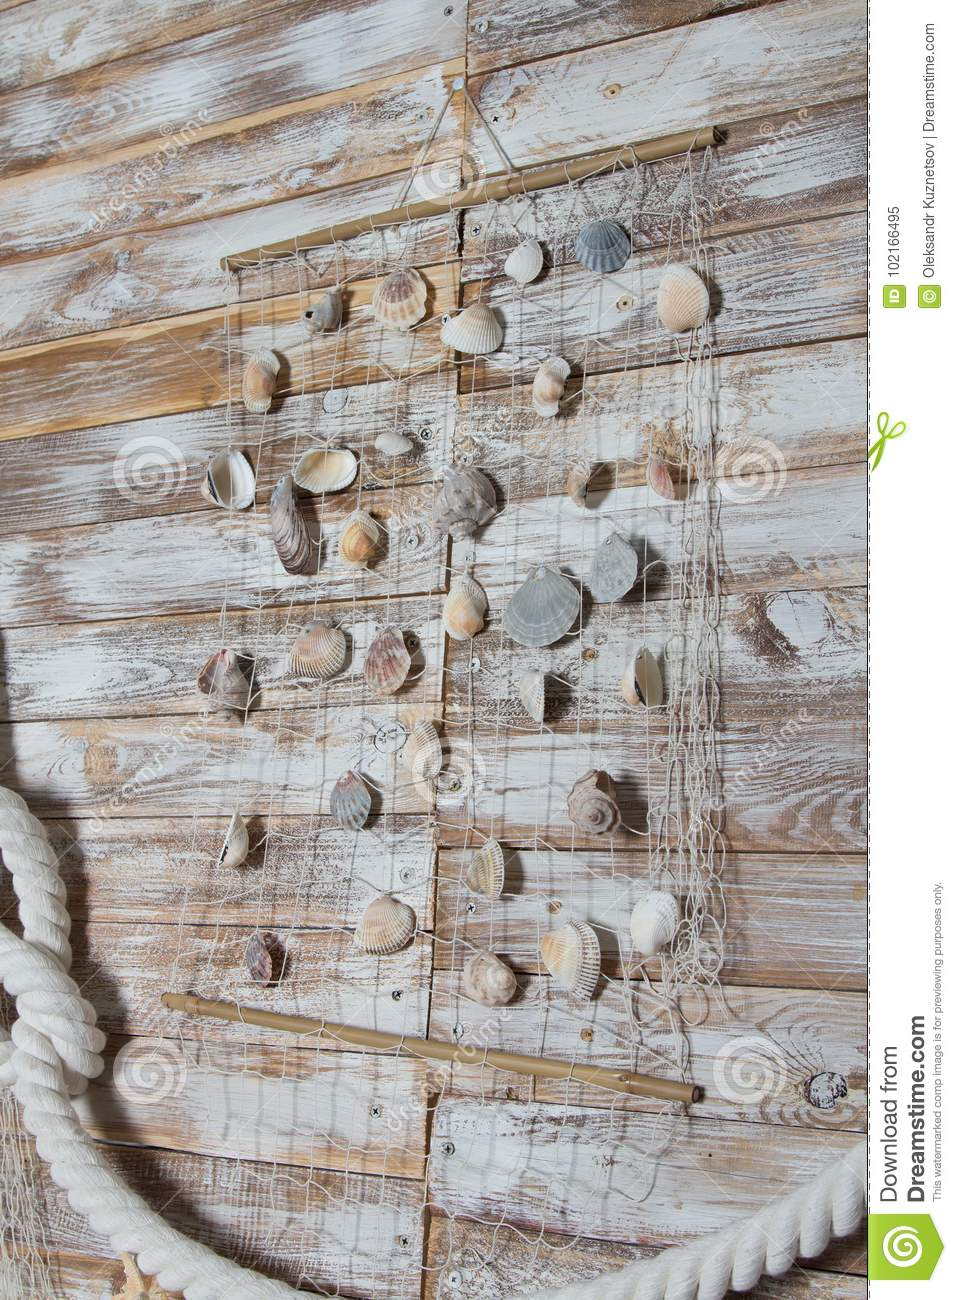 Sea shells in a fishnet,on wooden board, summer vacation background